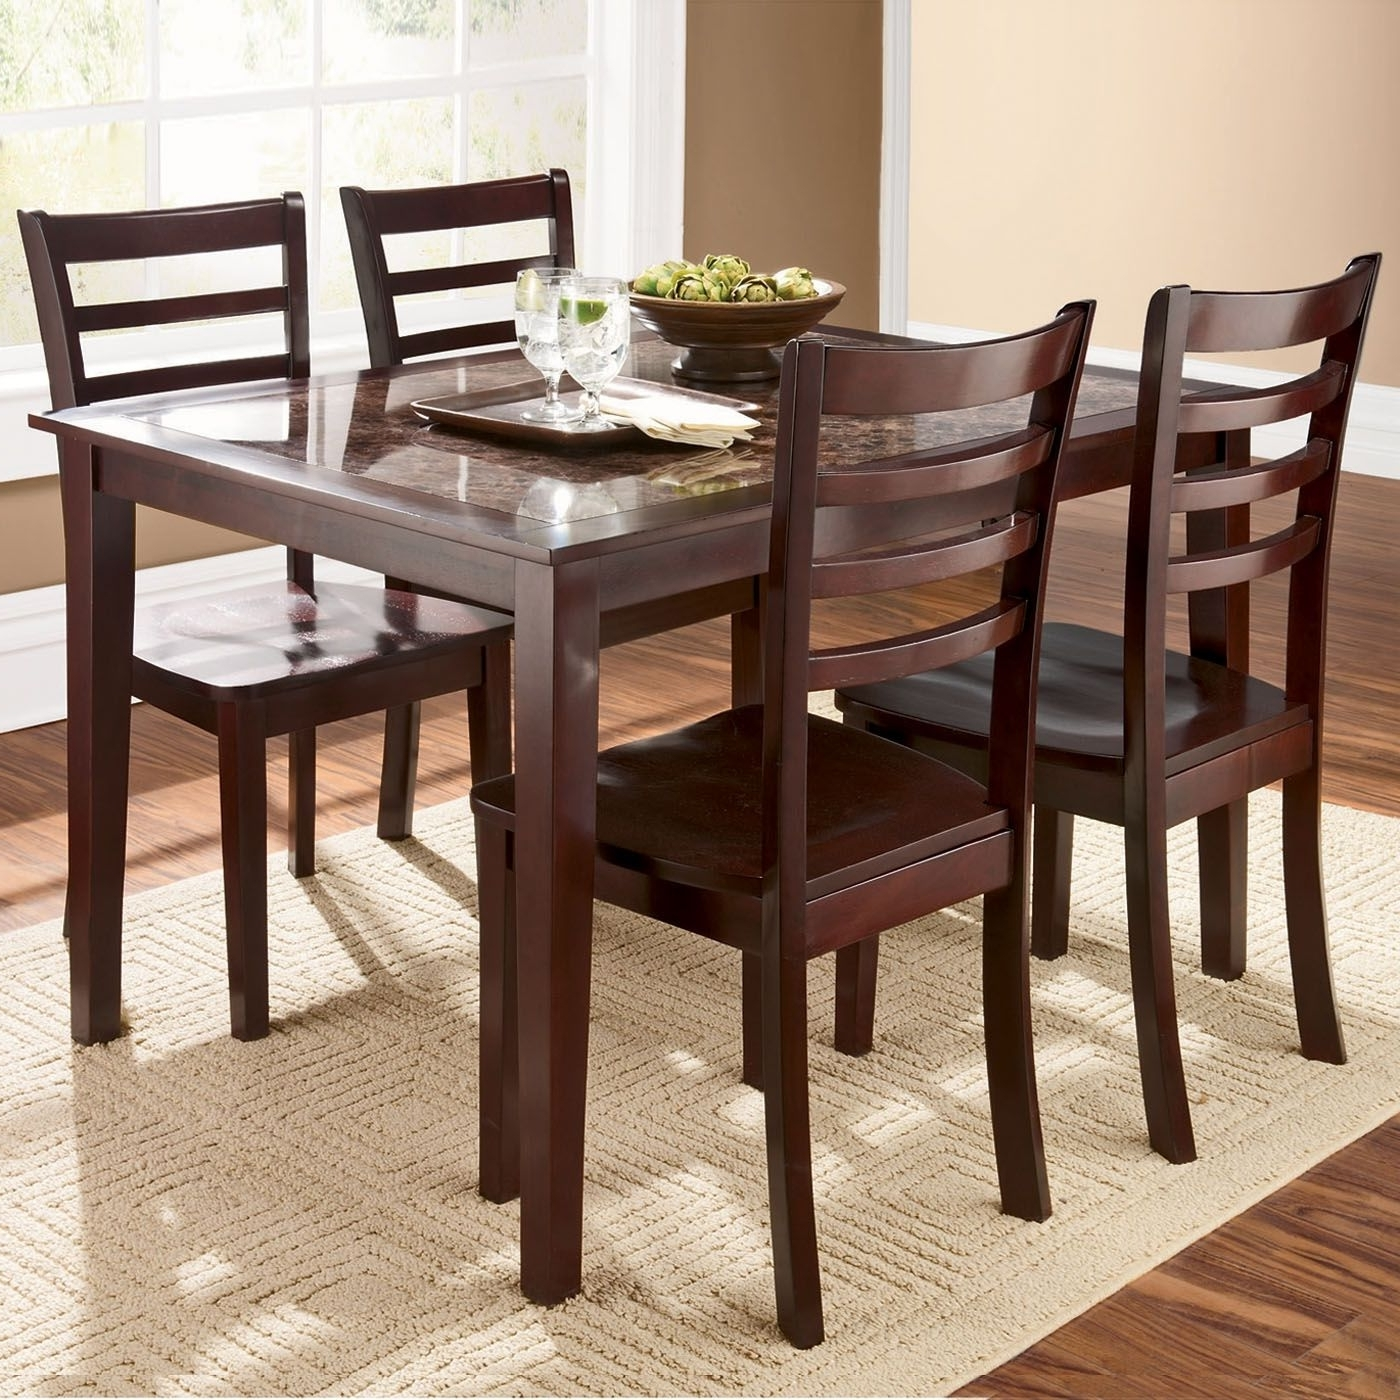 Caden 5 Piece Round Dining Sets With Upholstered Side Chairs With Popular Dining Tables & Chairs (View 6 of 25)